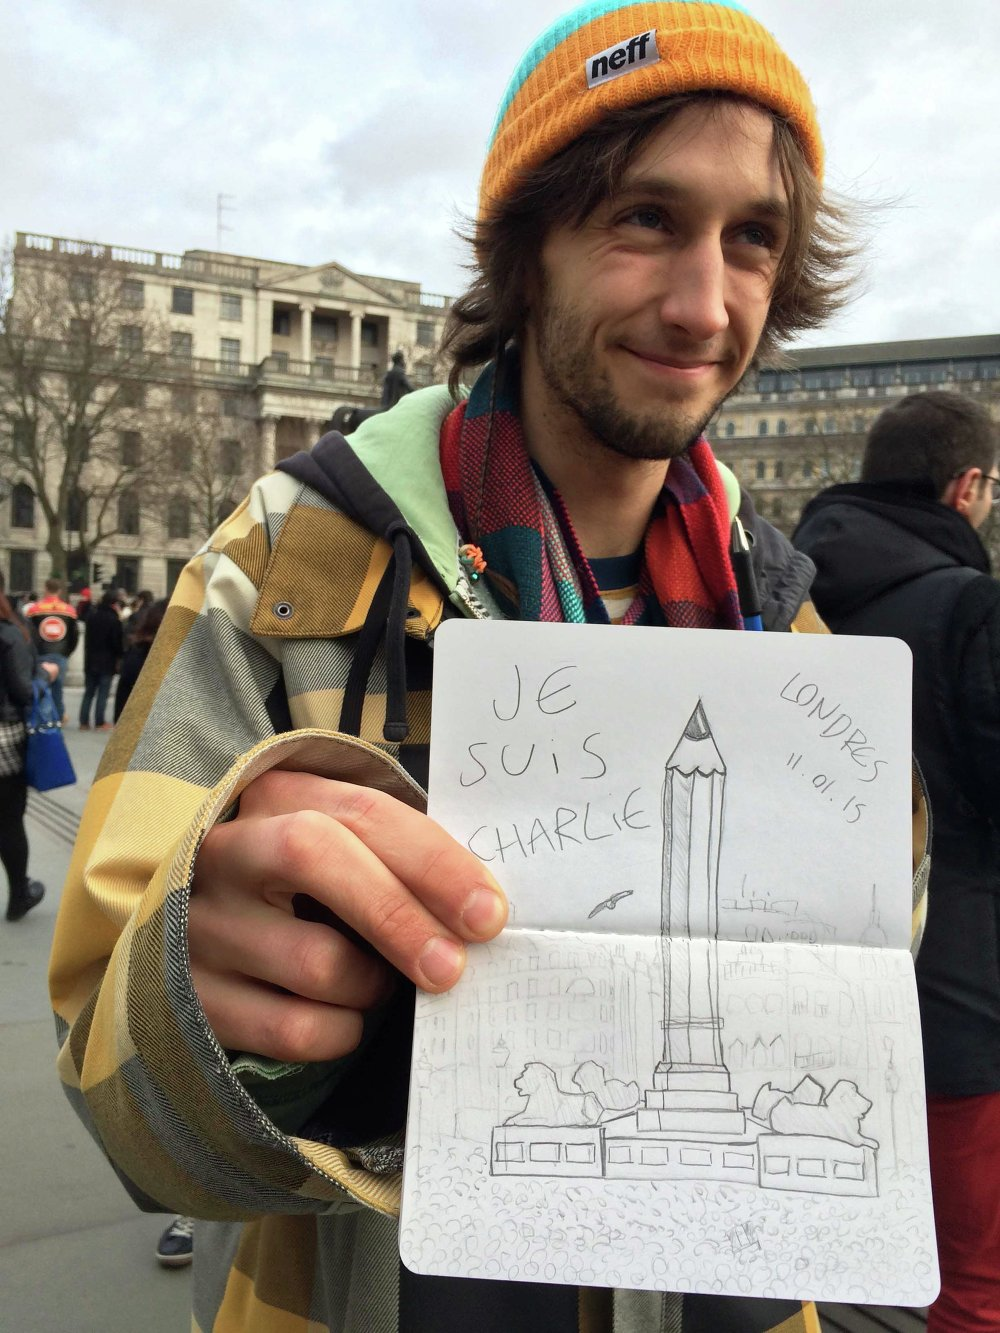 A man holds a sketch of Trafalgar Square and the words 'Je Suis Charlie'.